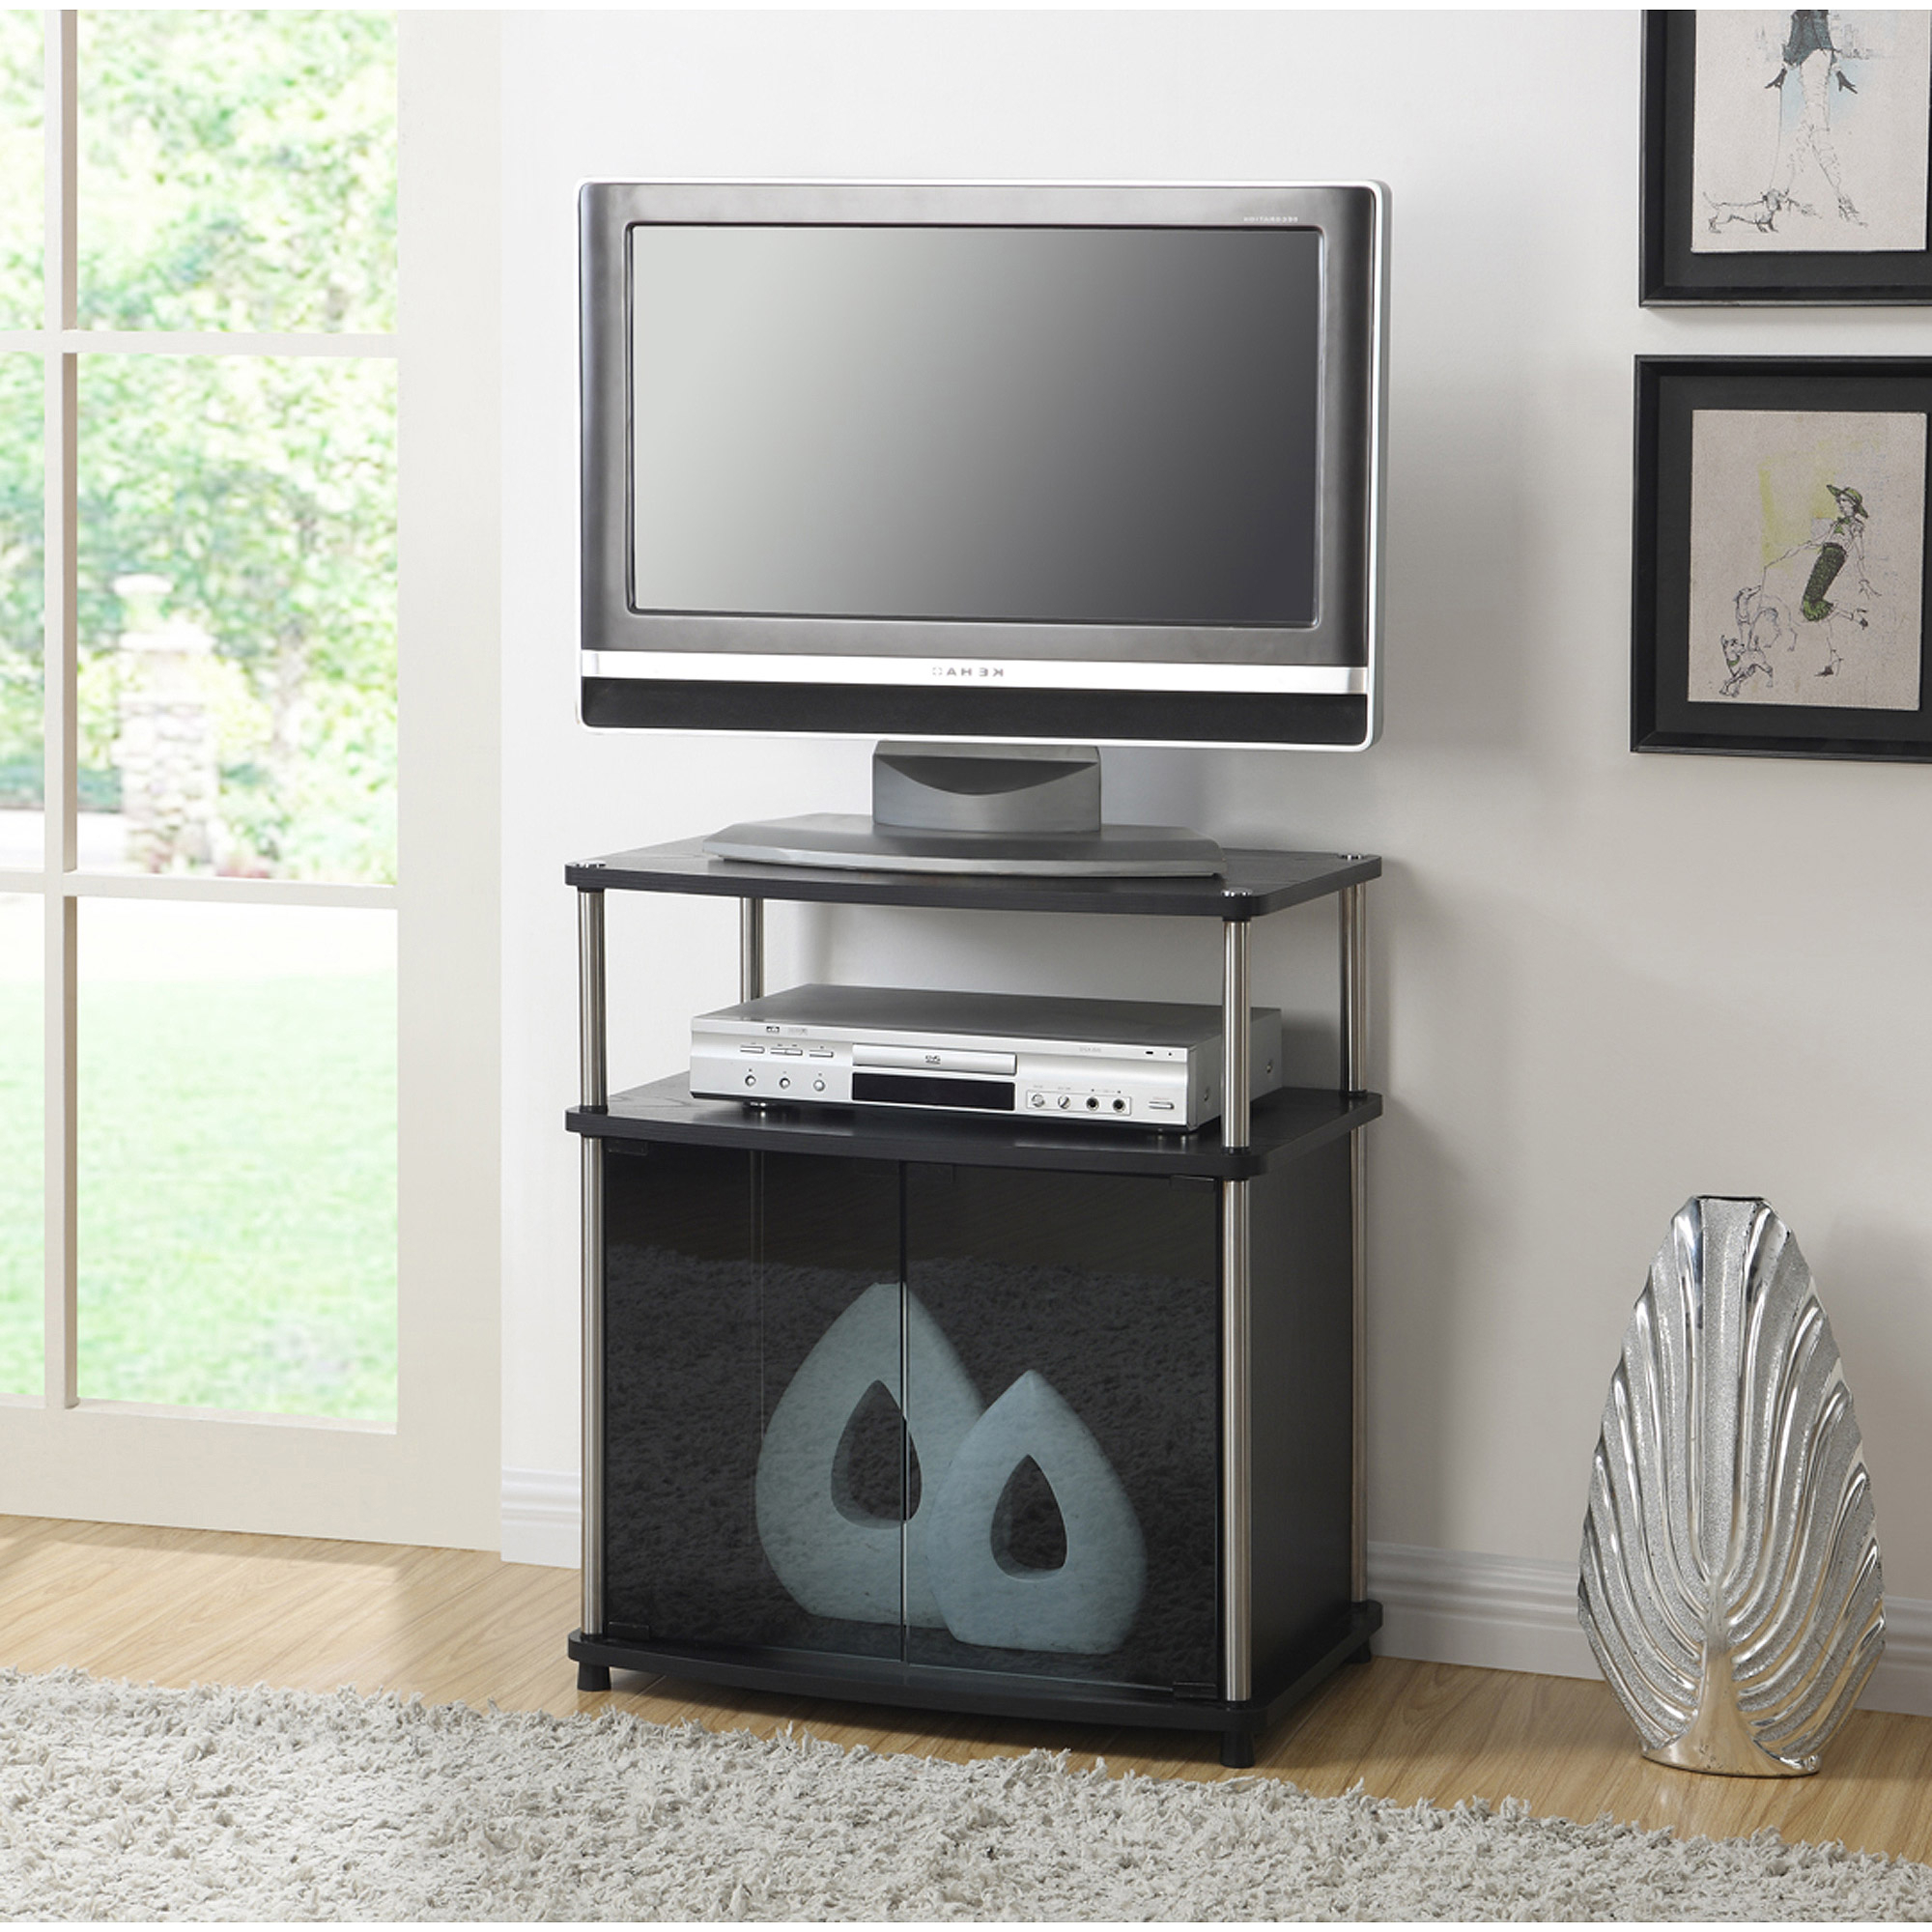 Wooden Tv Stands And Cabinets With Popular Convenience Concepts Designs2Go No Tools Tv Stand With Black Glass (View 20 of 20)